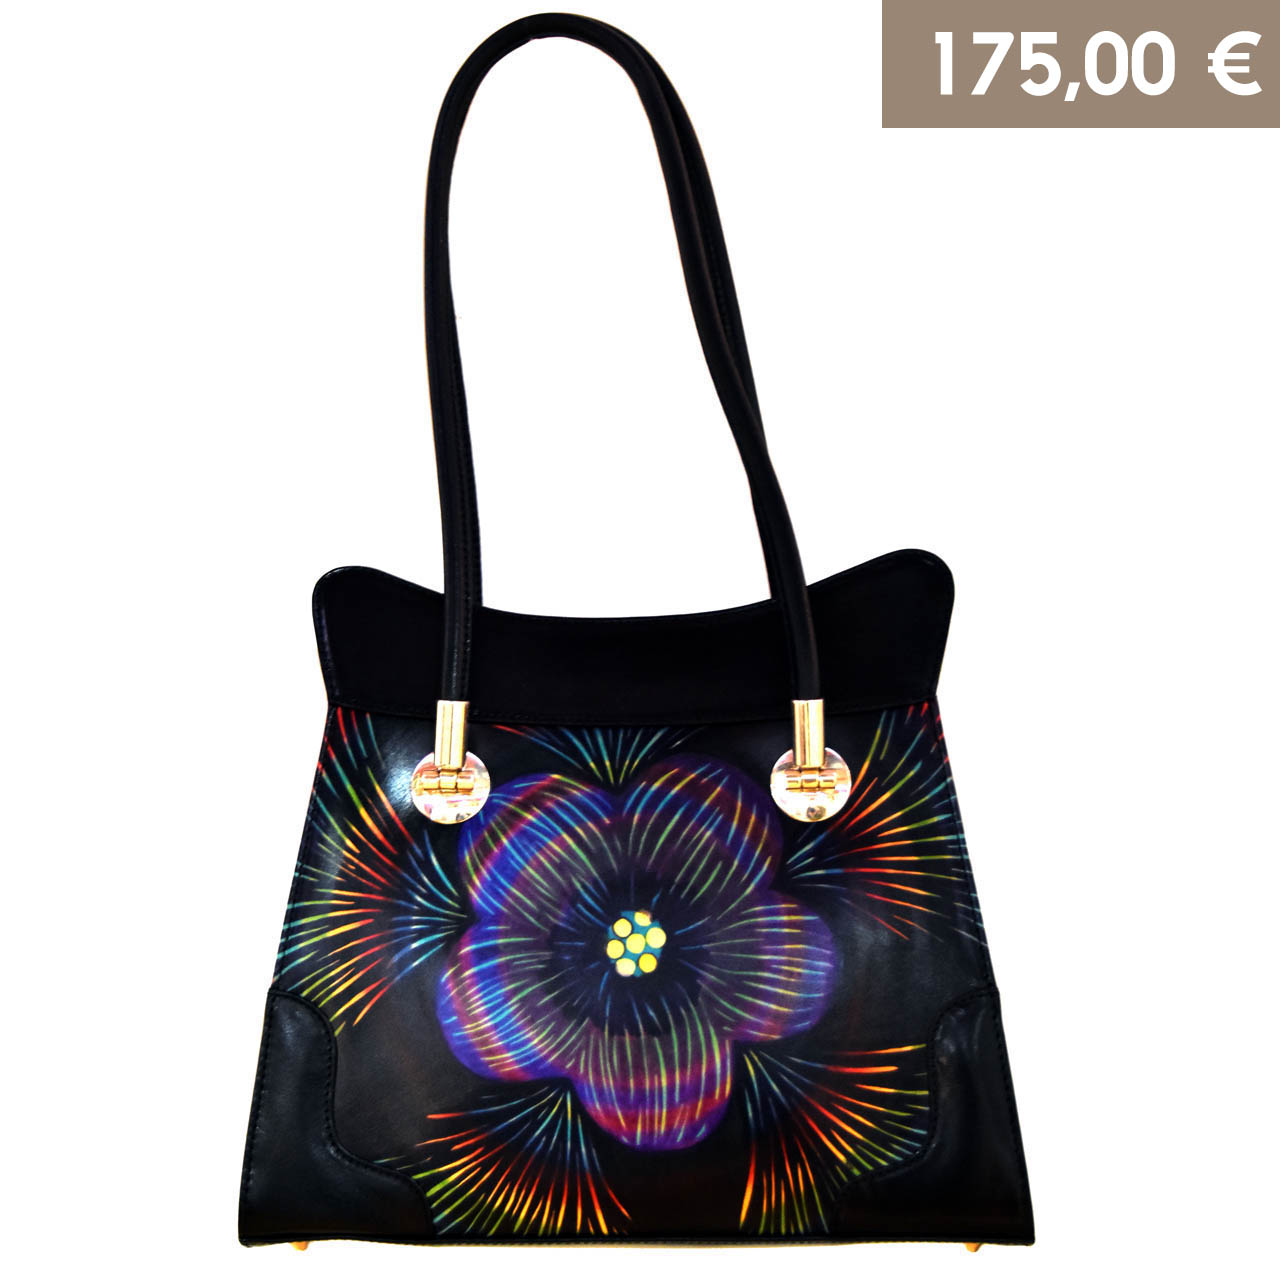 Art bag bambas collection barin events flowers with price sale